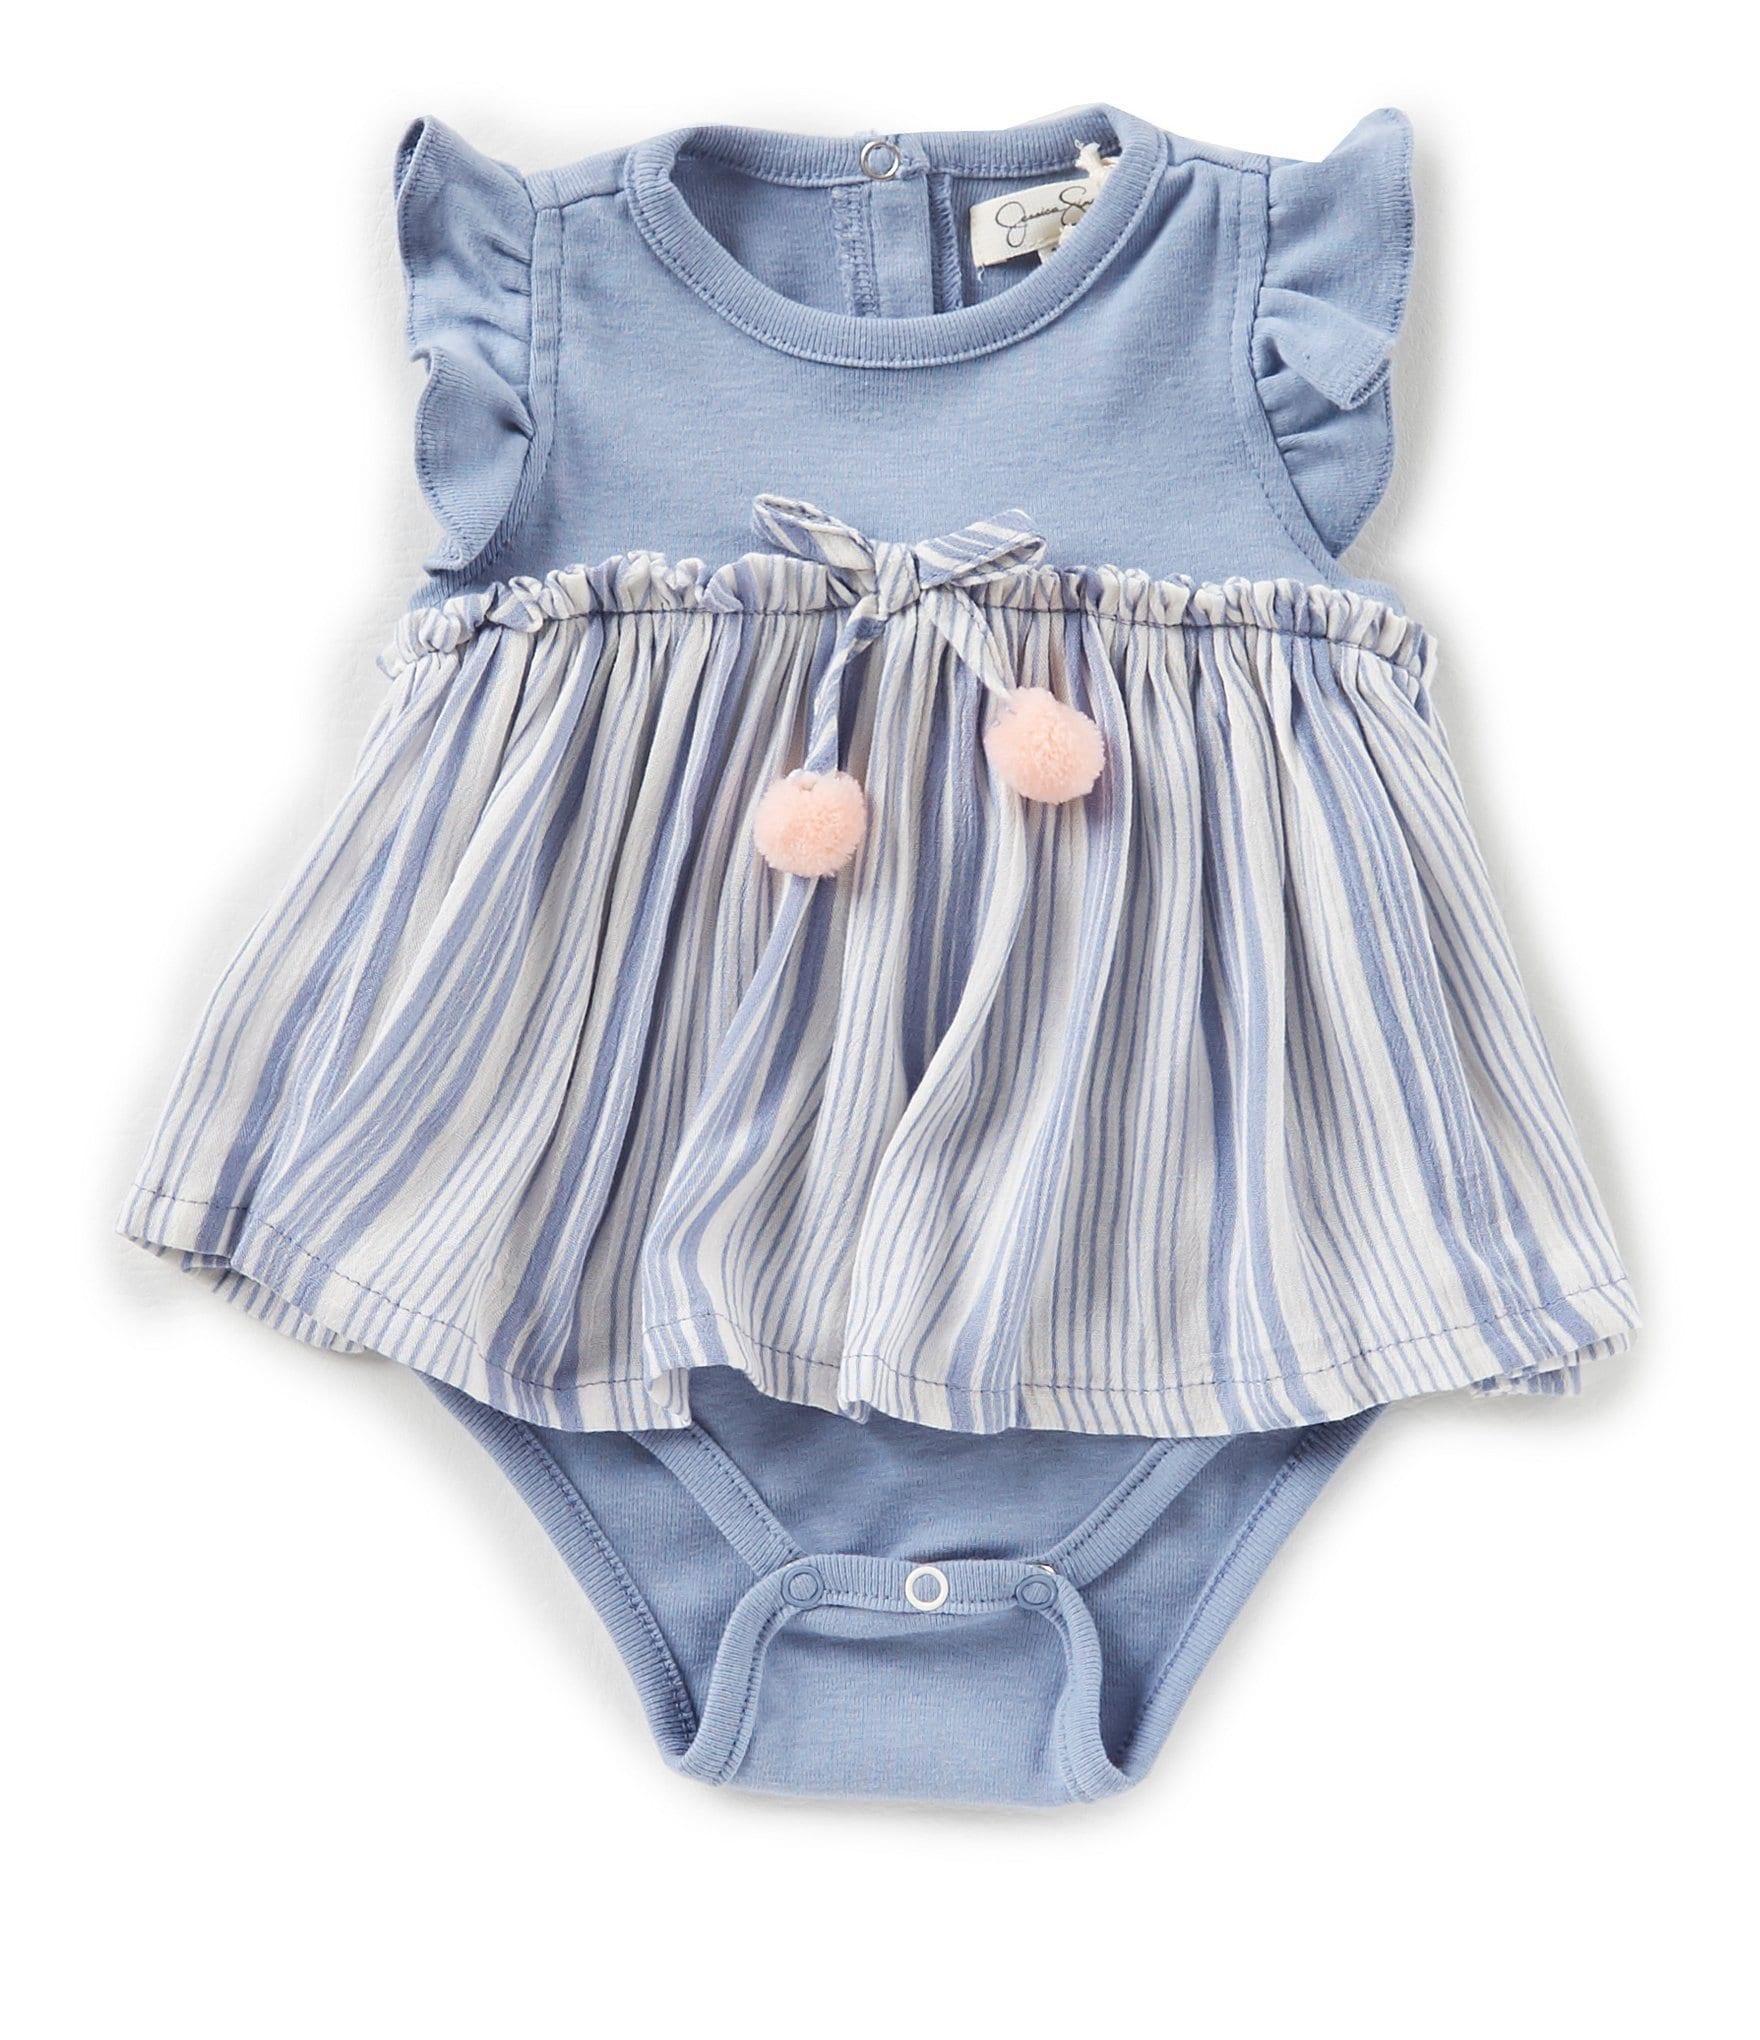 jessica simpson kids dillards com